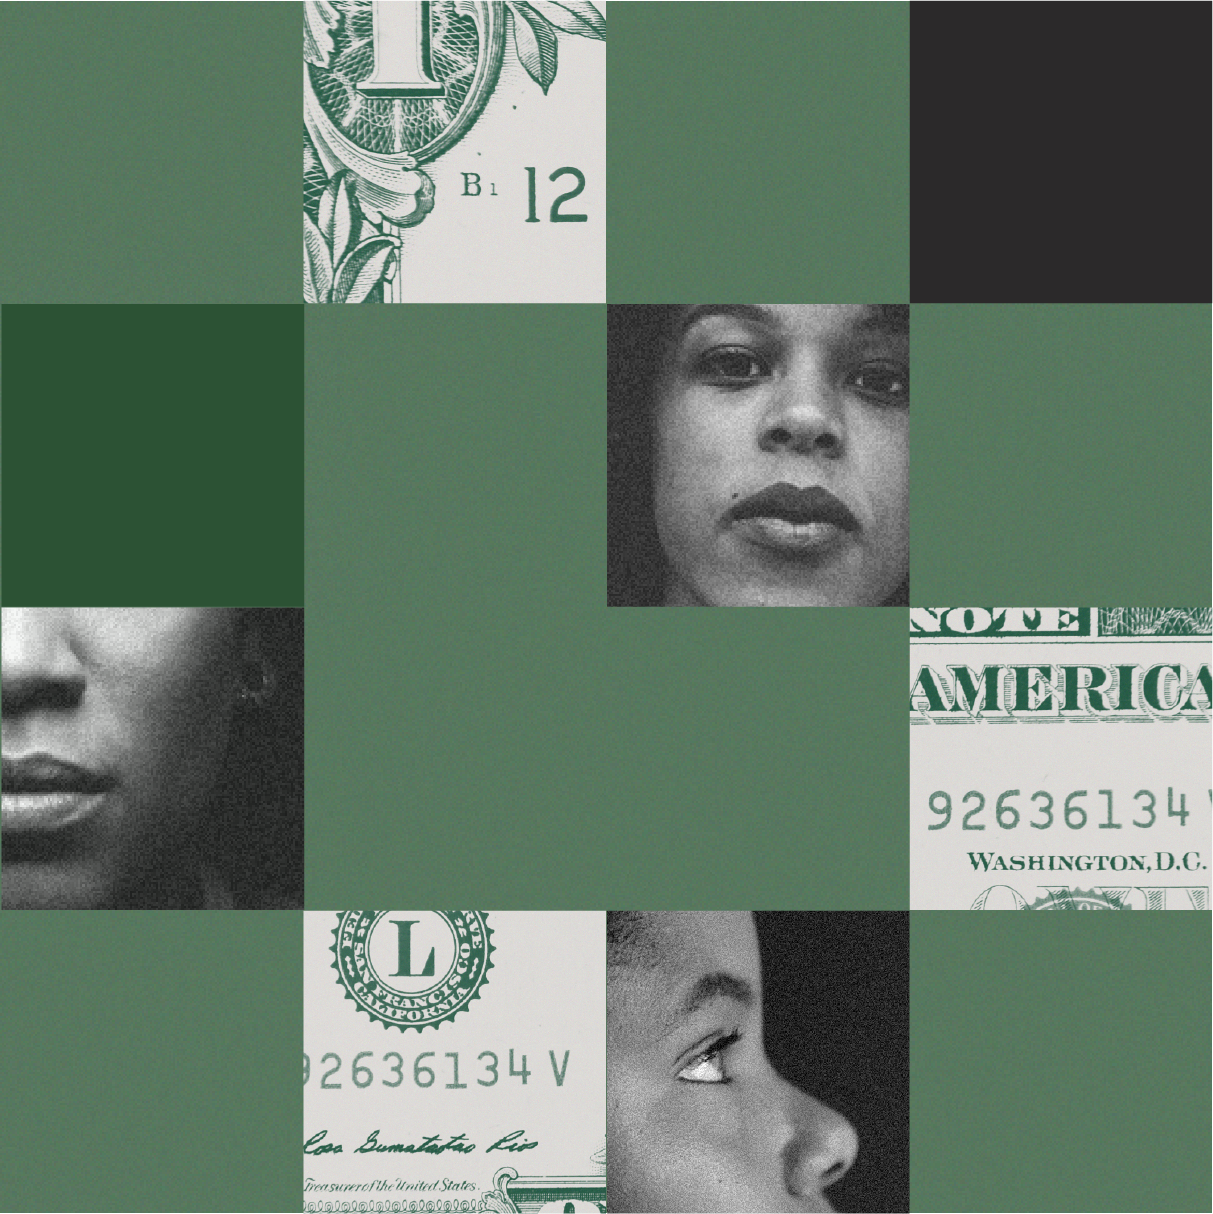 A collage squares featuring Black portraits and money.